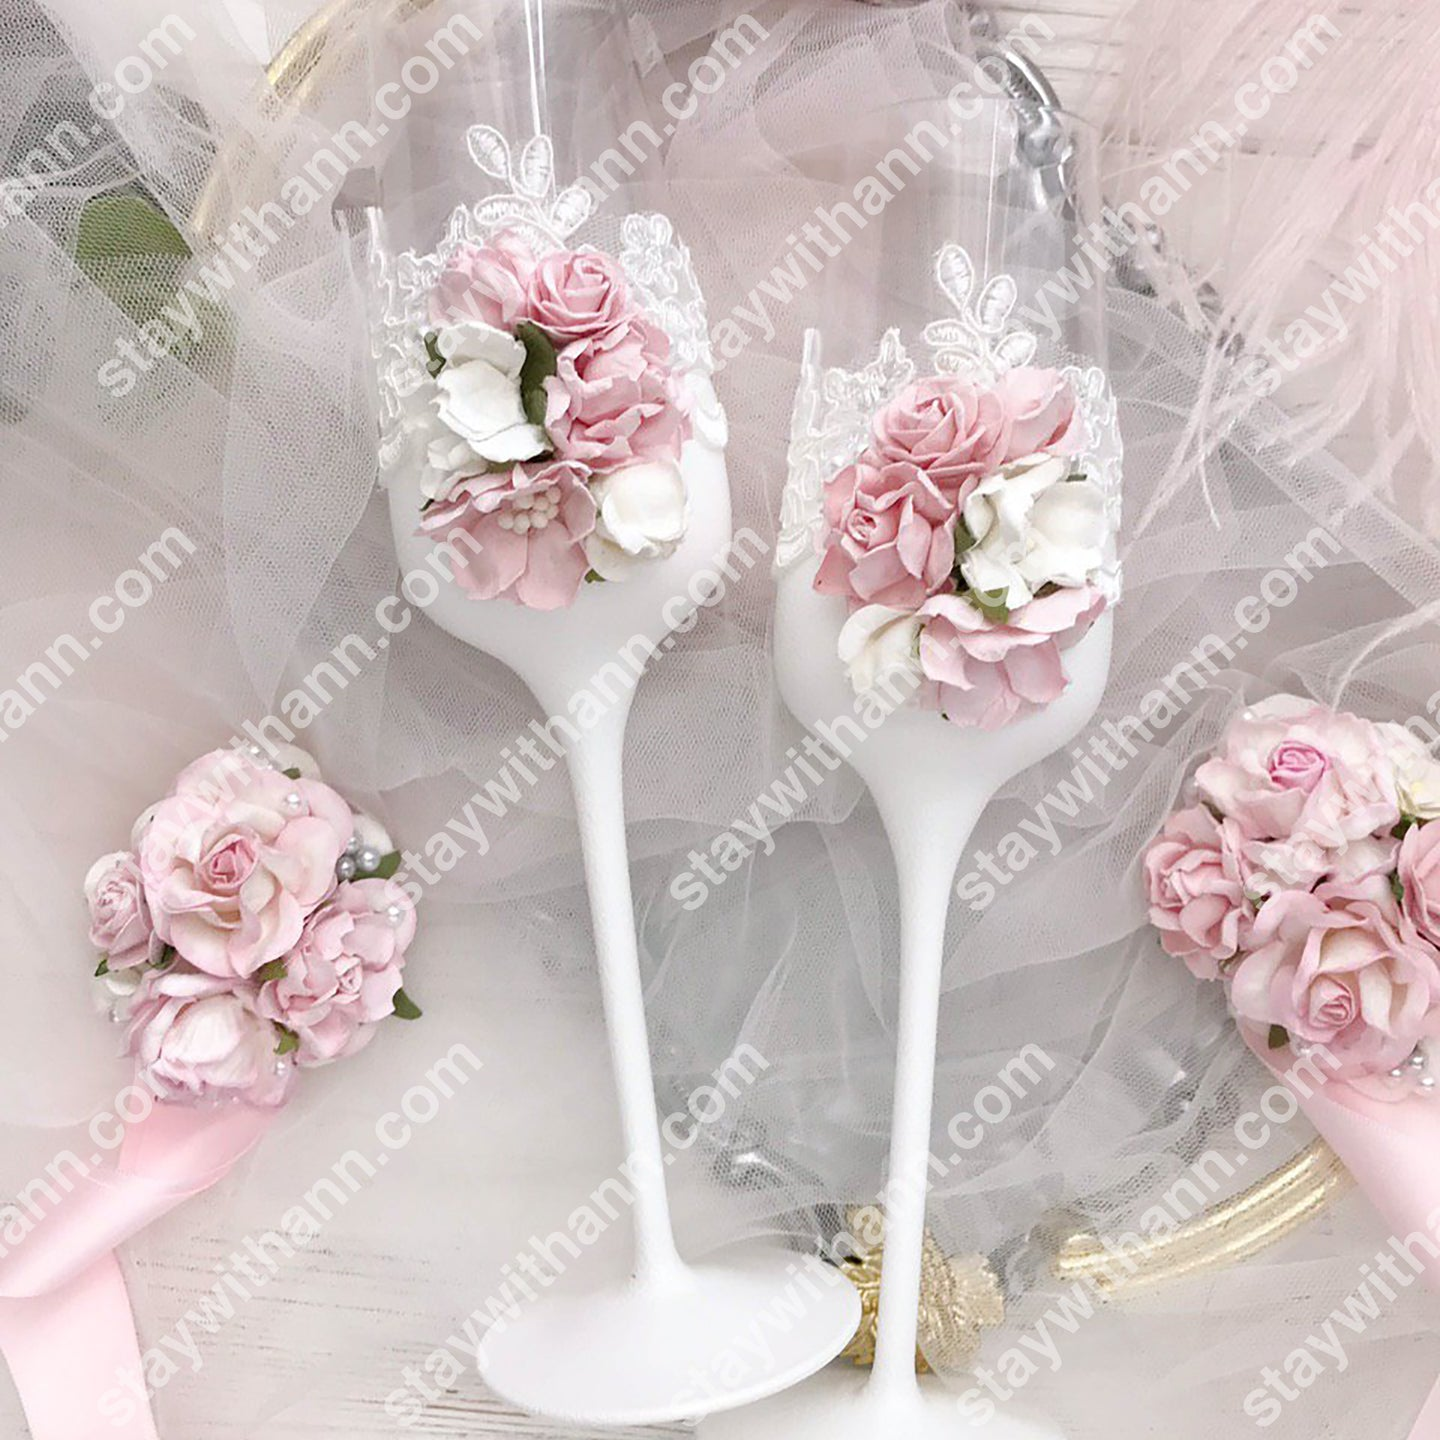 White Pink Wedding Glasses And Cake Serving Set With Flowers